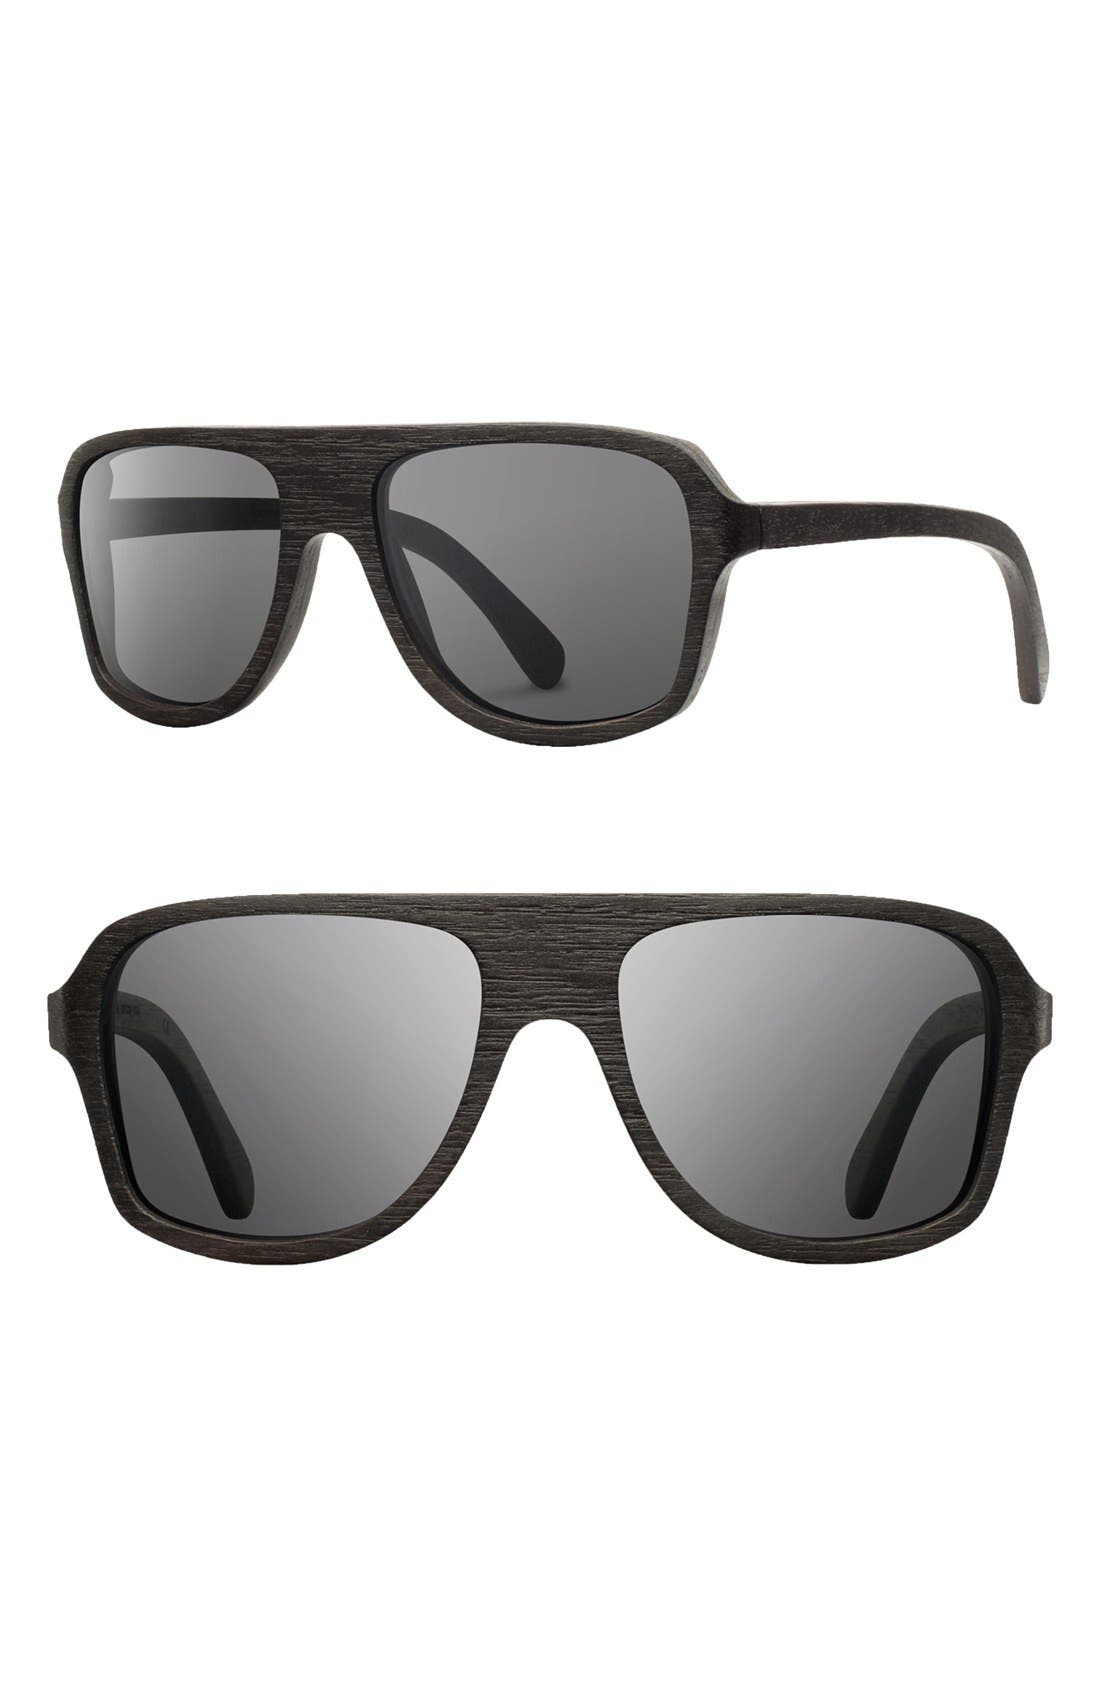 Alternate Image 1 Selected - Shwood 'Ashland' 56mm Polarized Wood Sunglasses